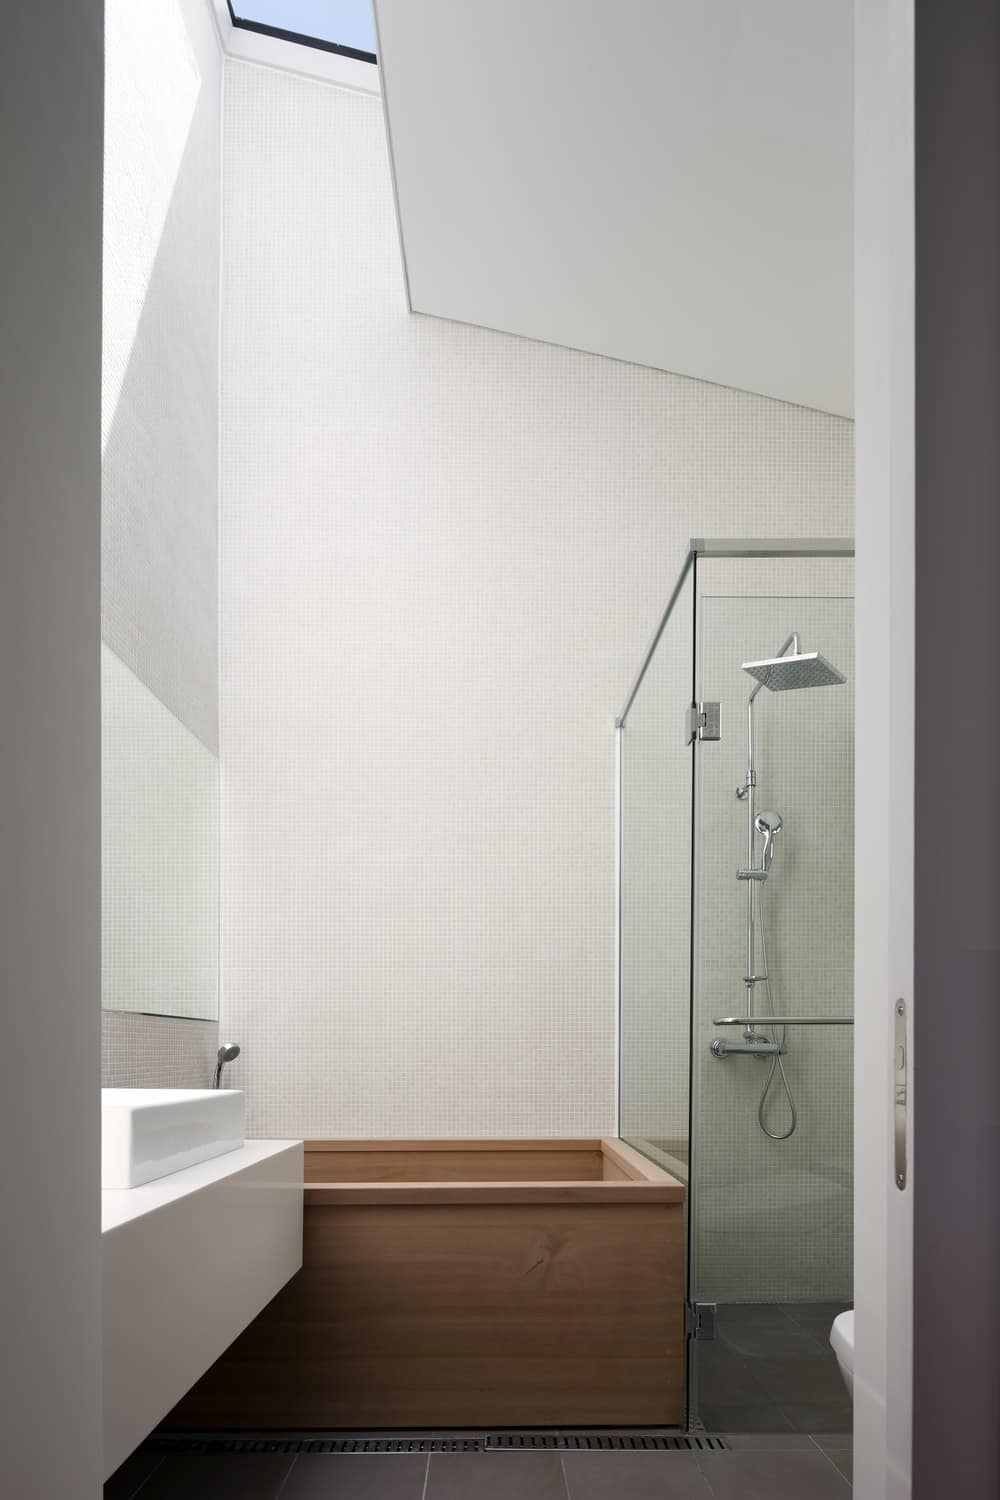 This is a close look at the primary bathroom with a tall arched ceiling, white walls, a glass-enclosed shower area and a wooden bathtub by the white sink.